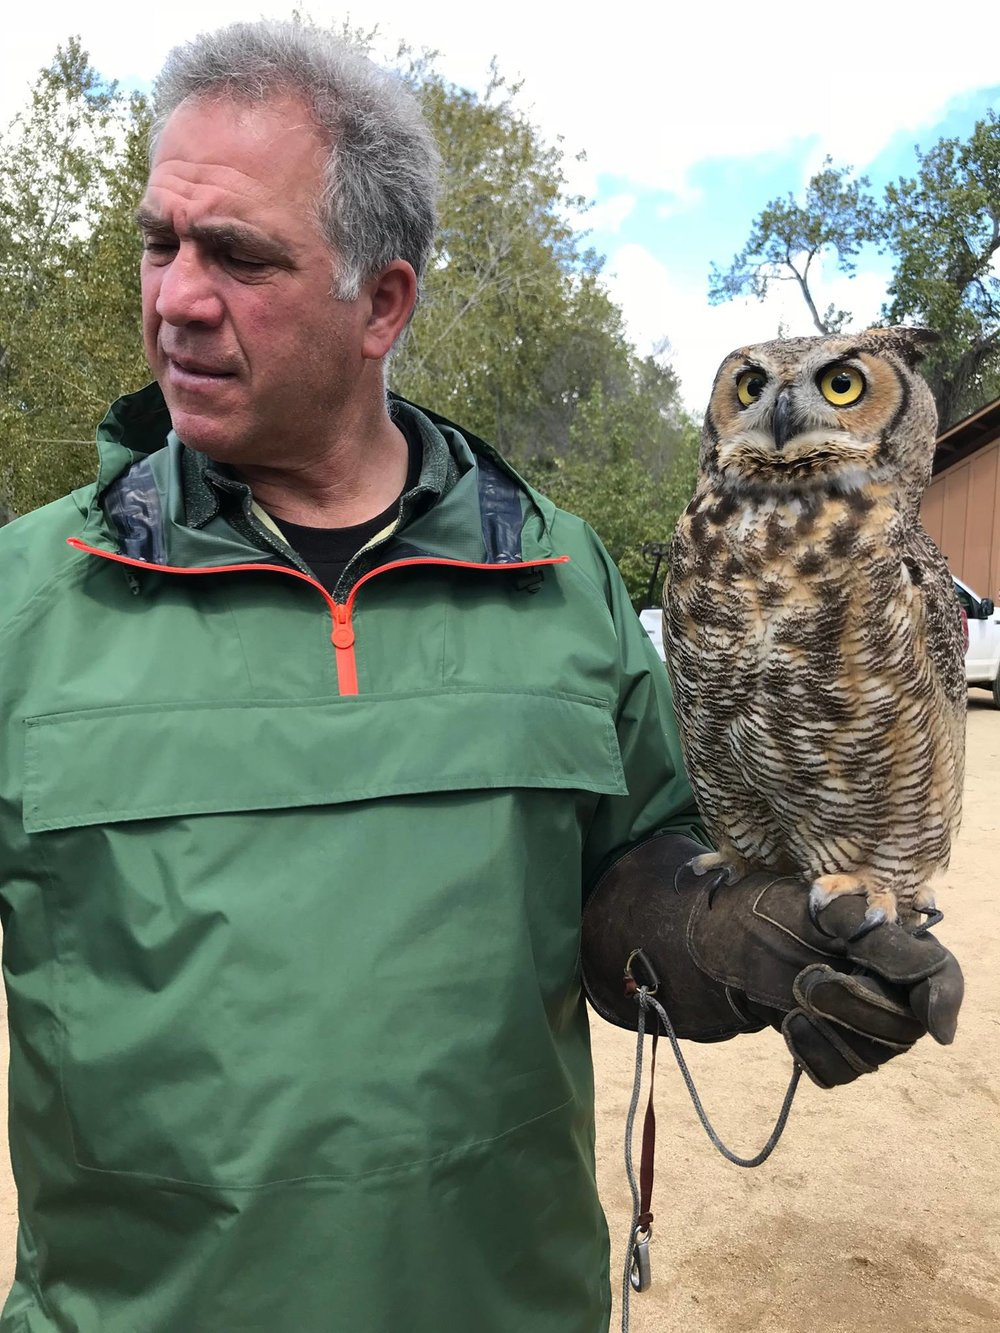 Antonio Belestreri with a Great-Horned Owl